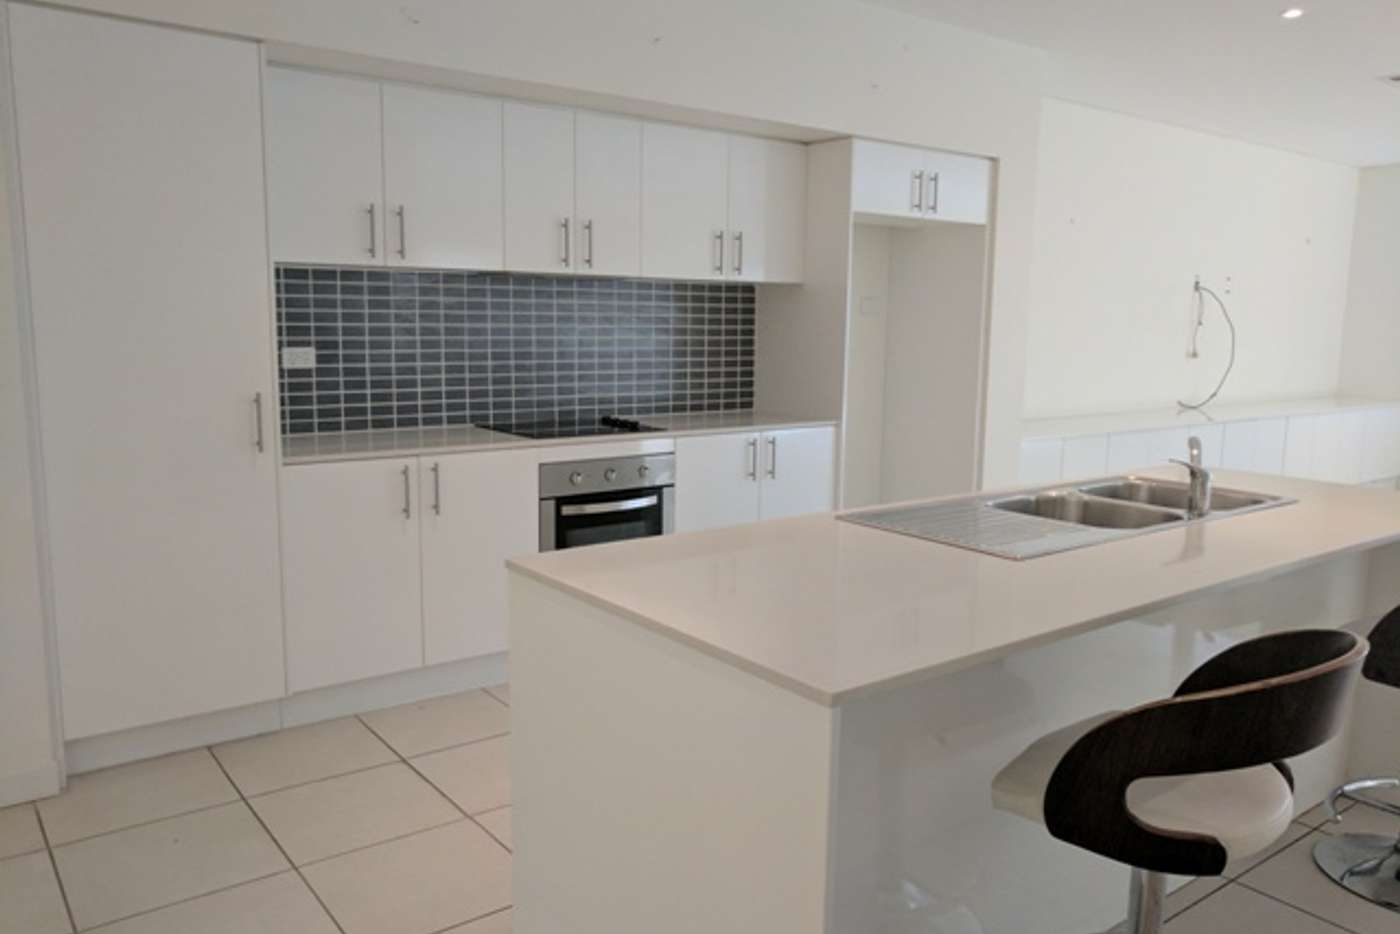 Seventh view of Homely house listing, 67/72 Glendower Street, Rosemeadow NSW 2560